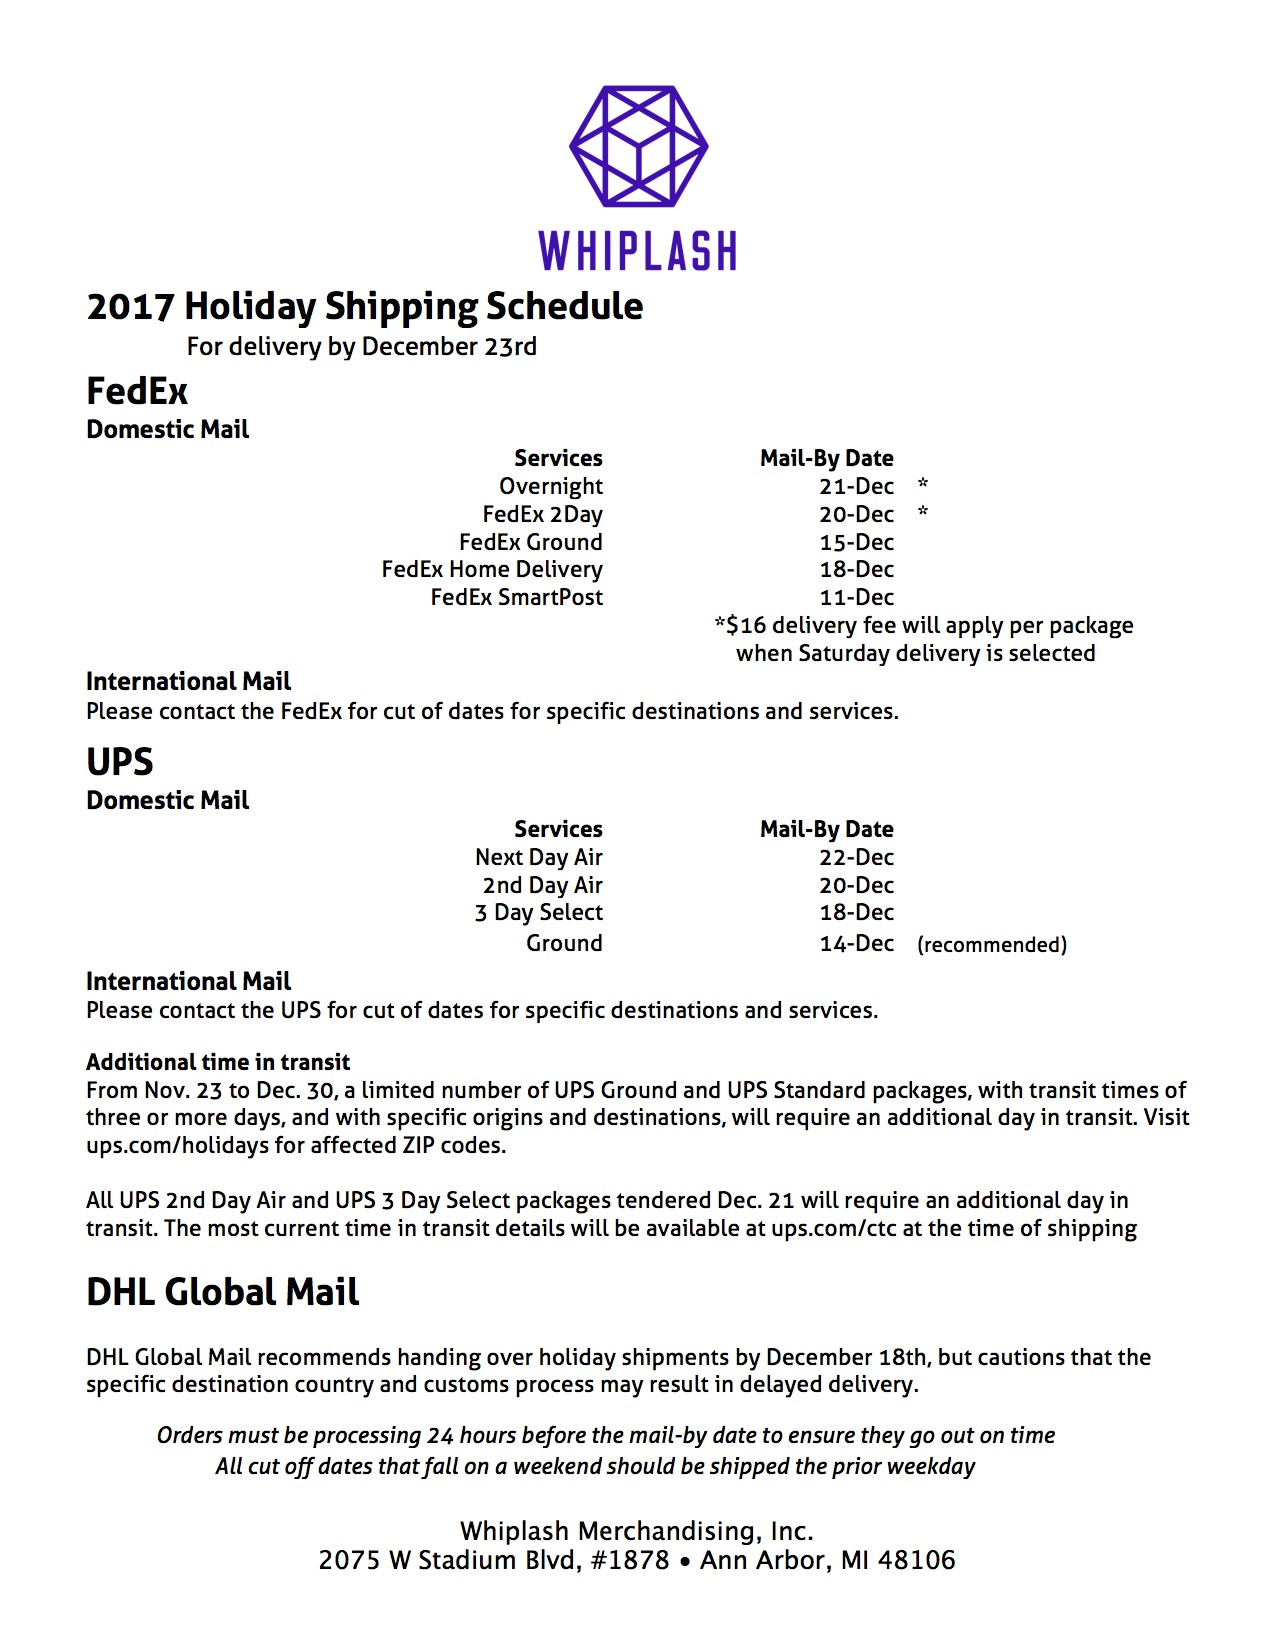 Whiplash - Holiday Shipping Schedule